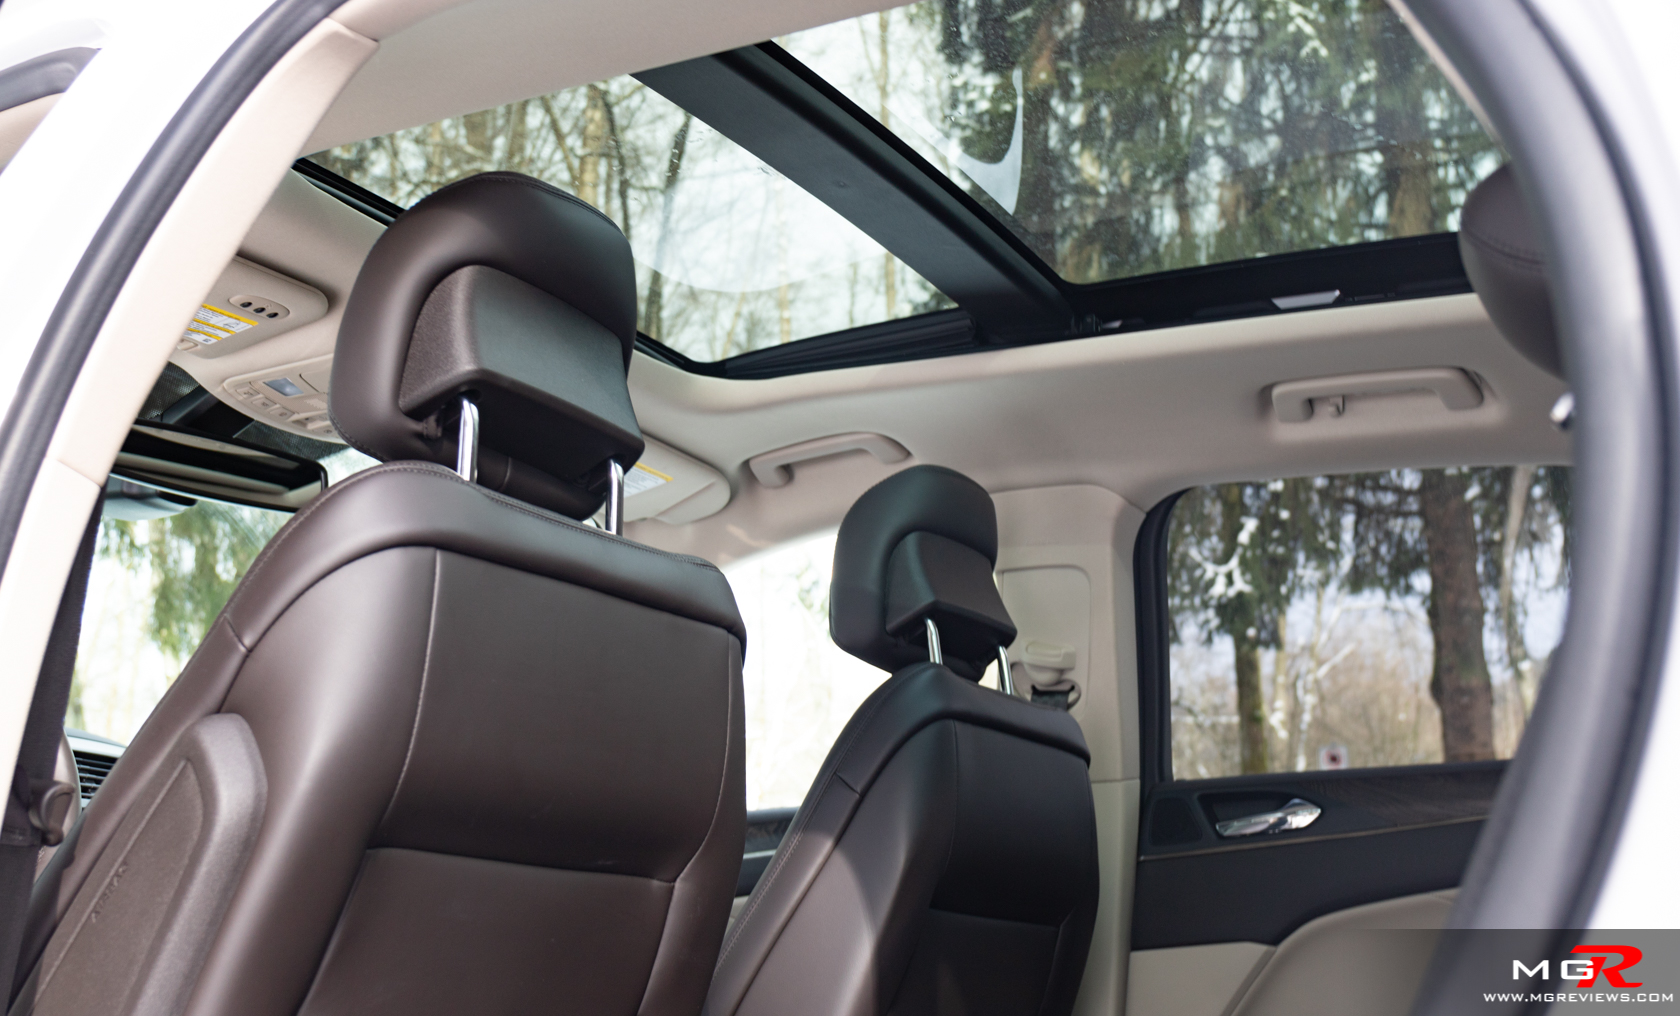 Tremendous 2019 Lincoln Mkc Interior 3 M G Reviews Squirreltailoven Fun Painted Chair Ideas Images Squirreltailovenorg